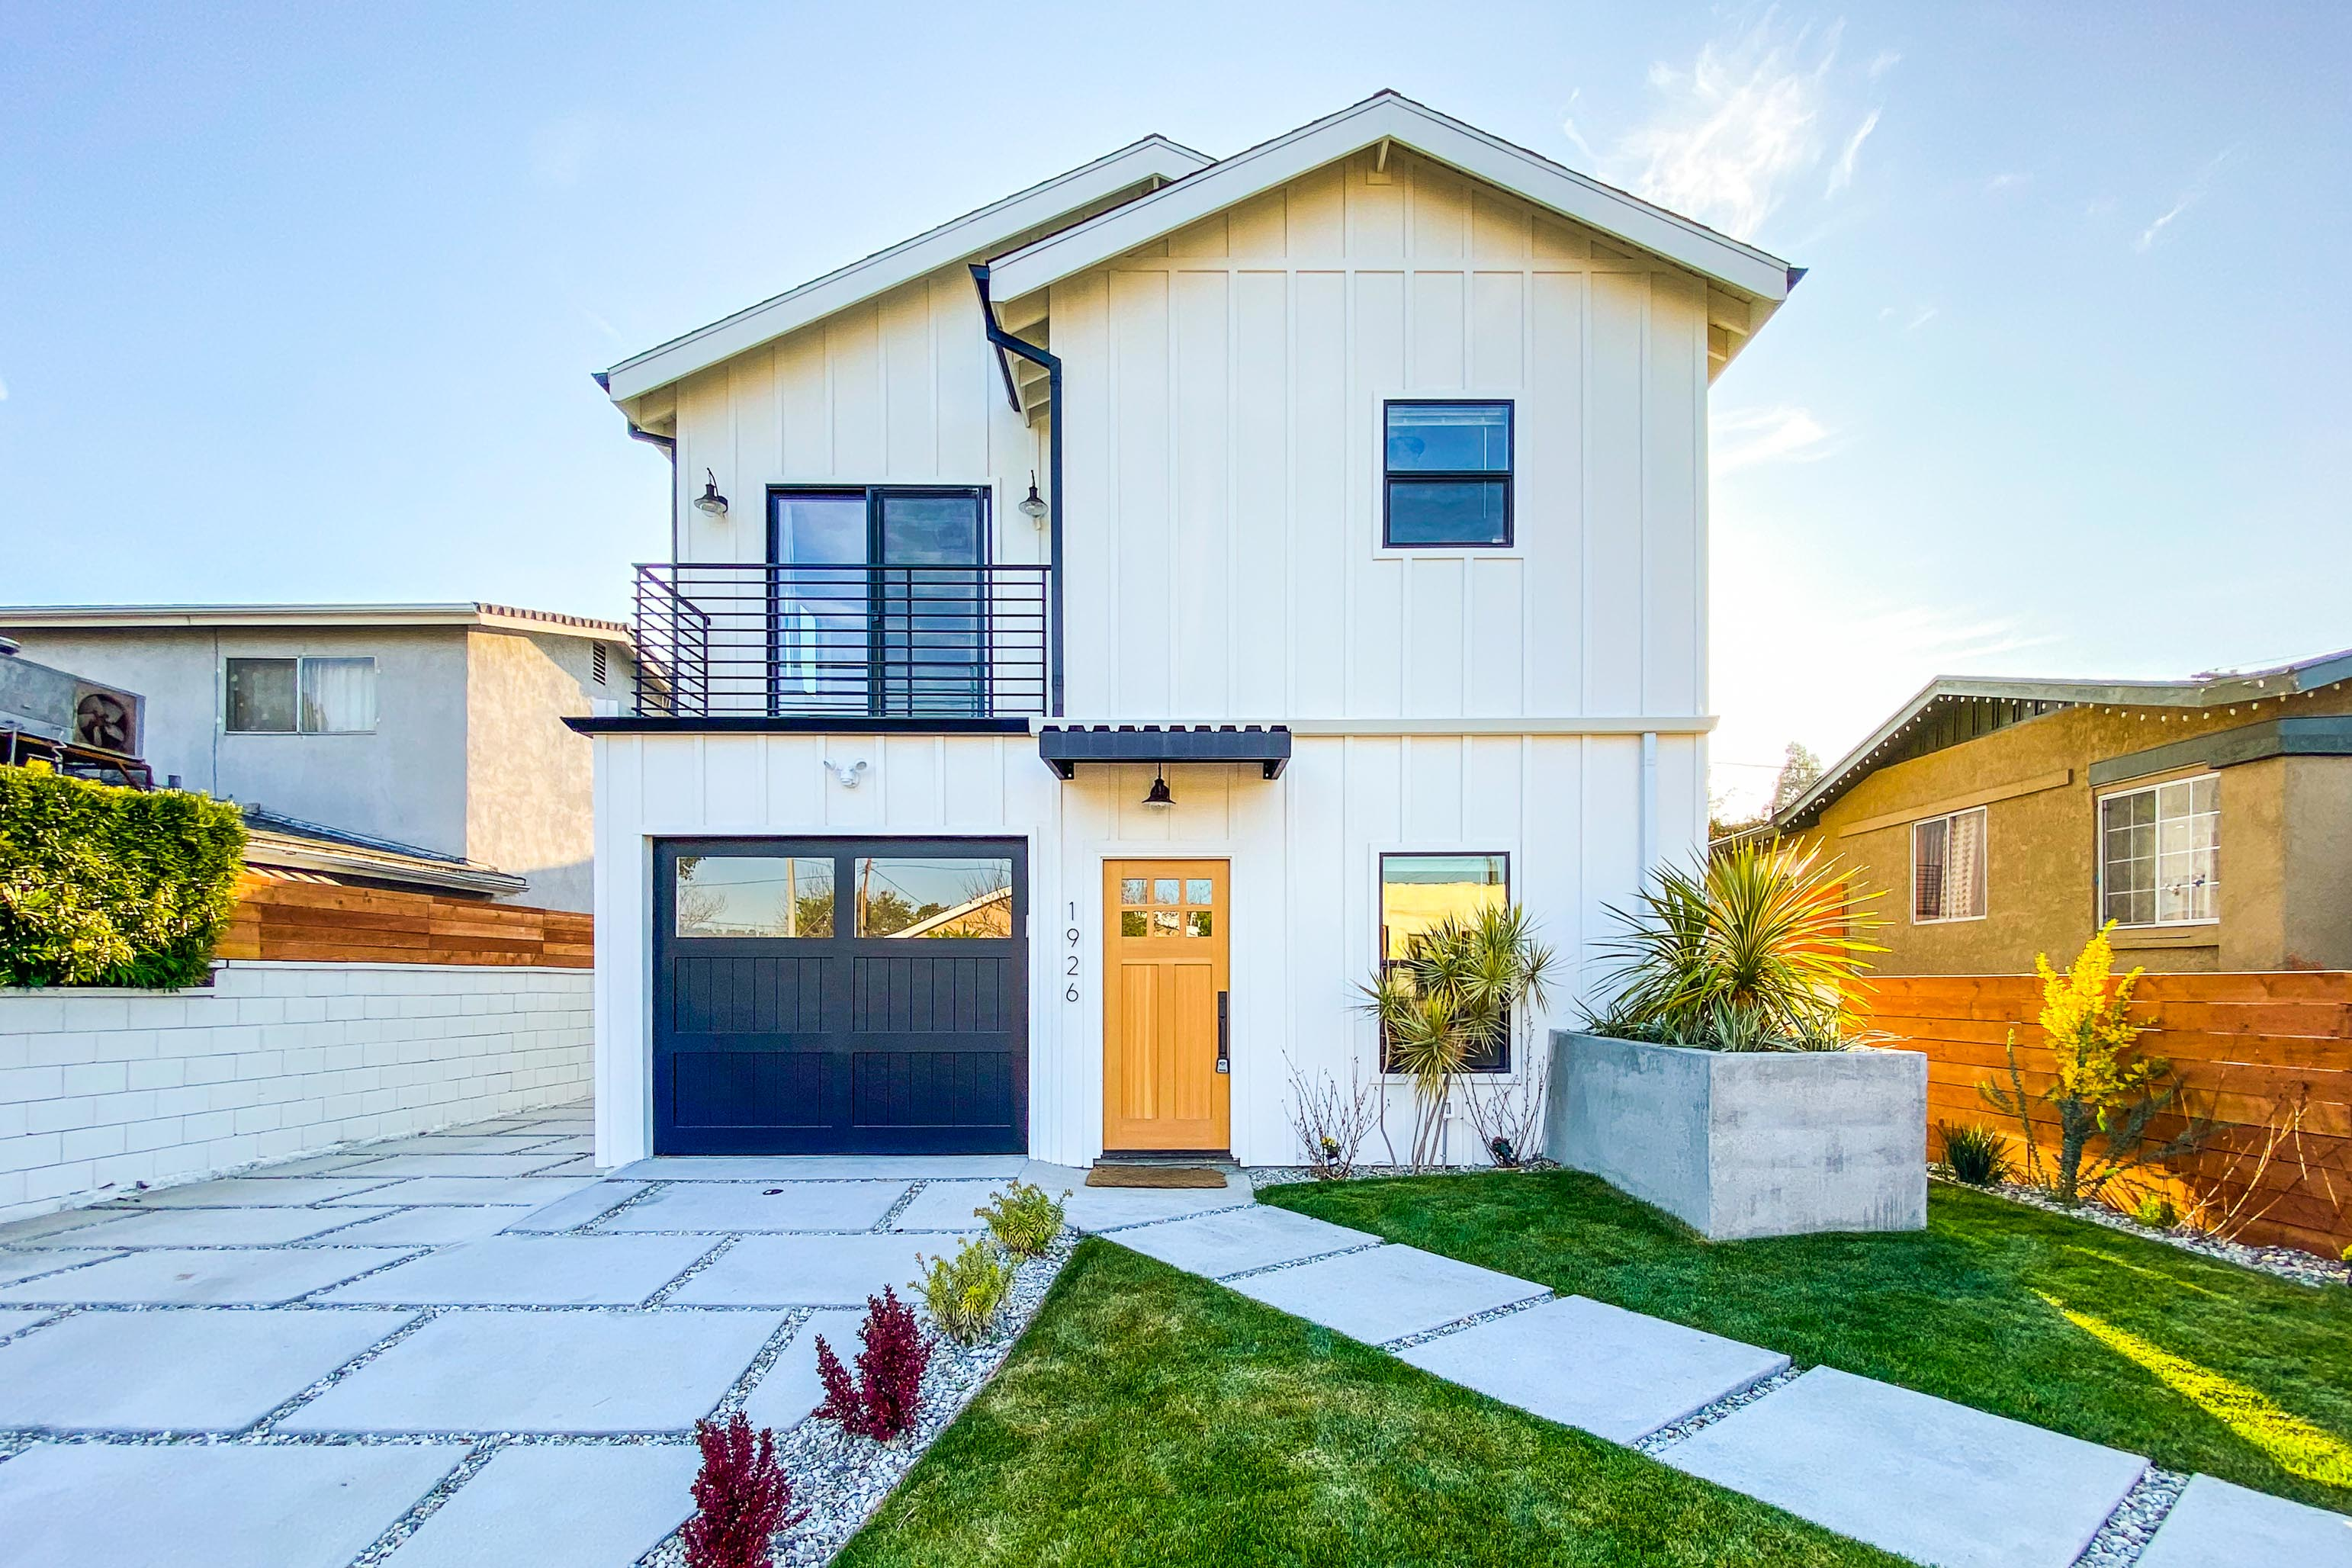 Two-Story Private Home on Duplex Lot | Balcony Off Master Bedroom | Washer/Dryer | Gated Entrance